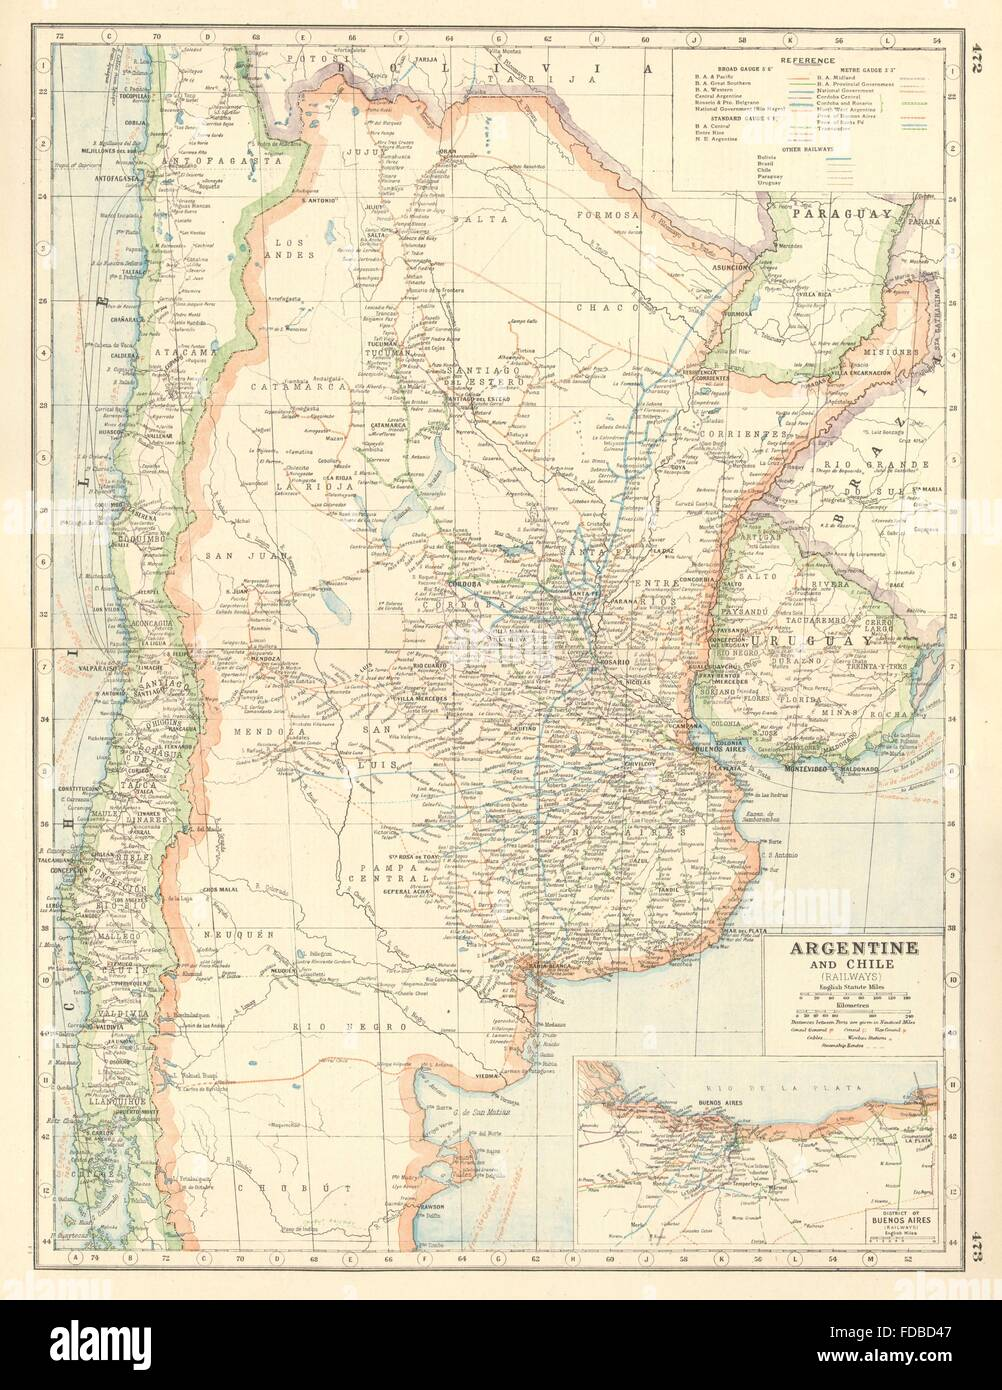 ARGENTINA RAILWAYS Showing Rail Gauge Companies Inset Buenos - Argentine railway map